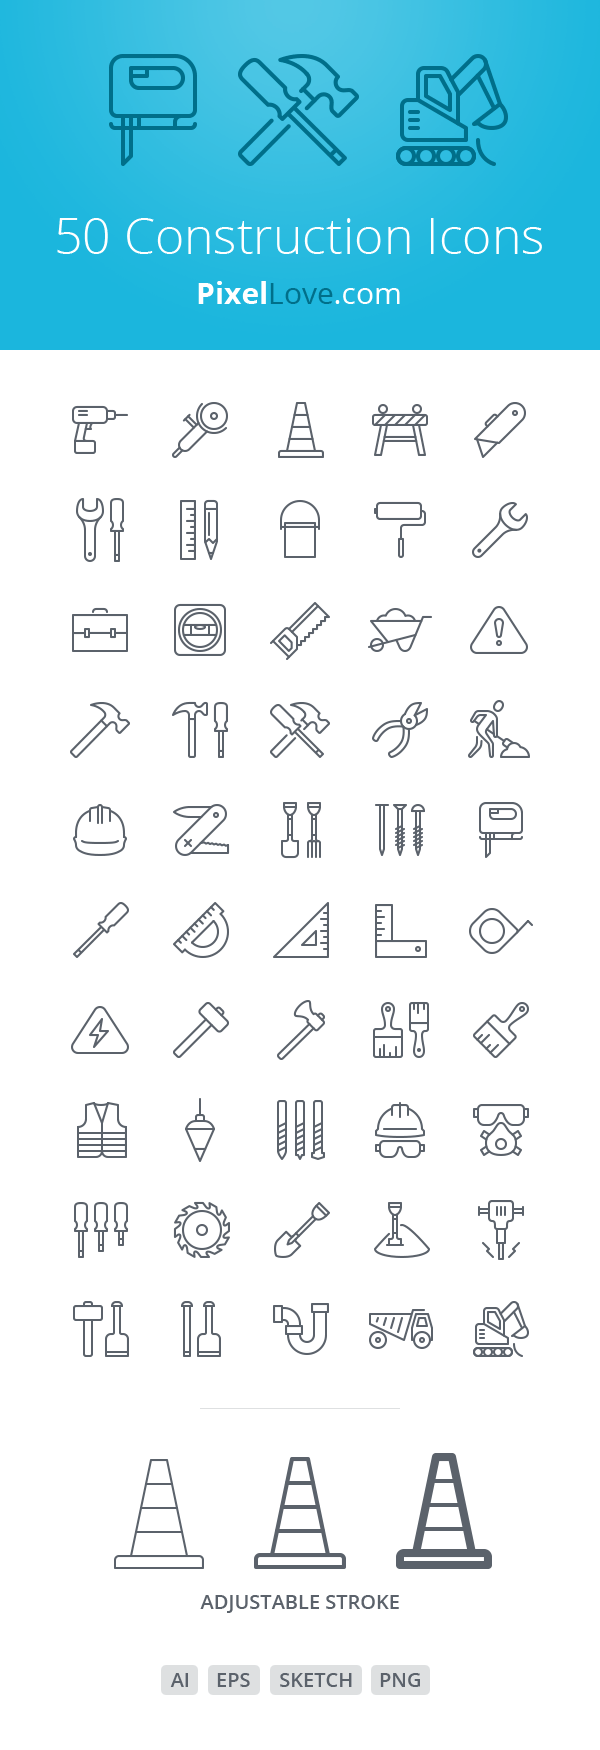 Free Download 50 Construction Icons for iOS 8